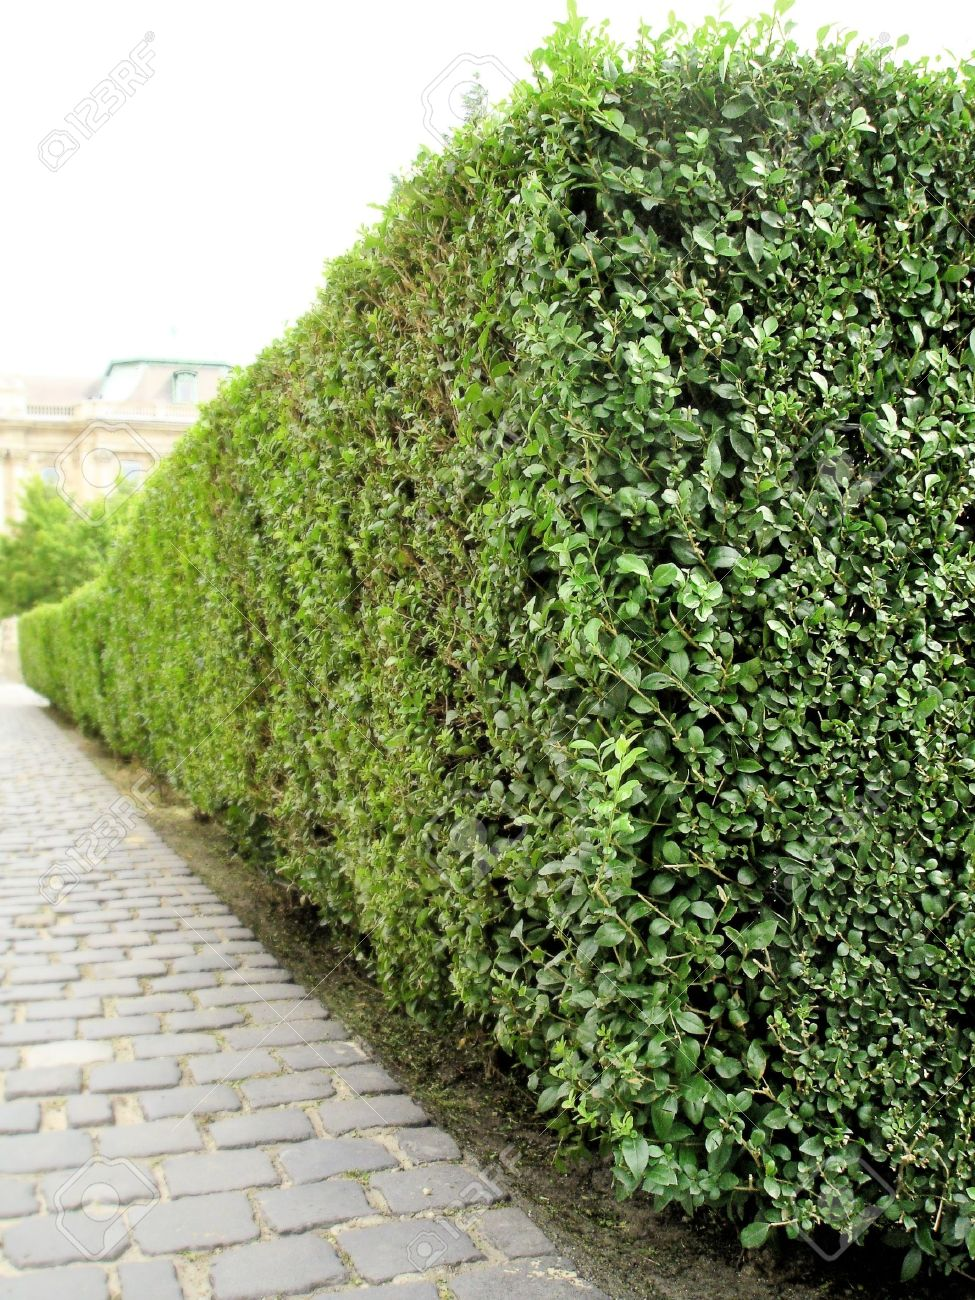 Green Bush Garden Perspective Stock Photo Picture And Royalty